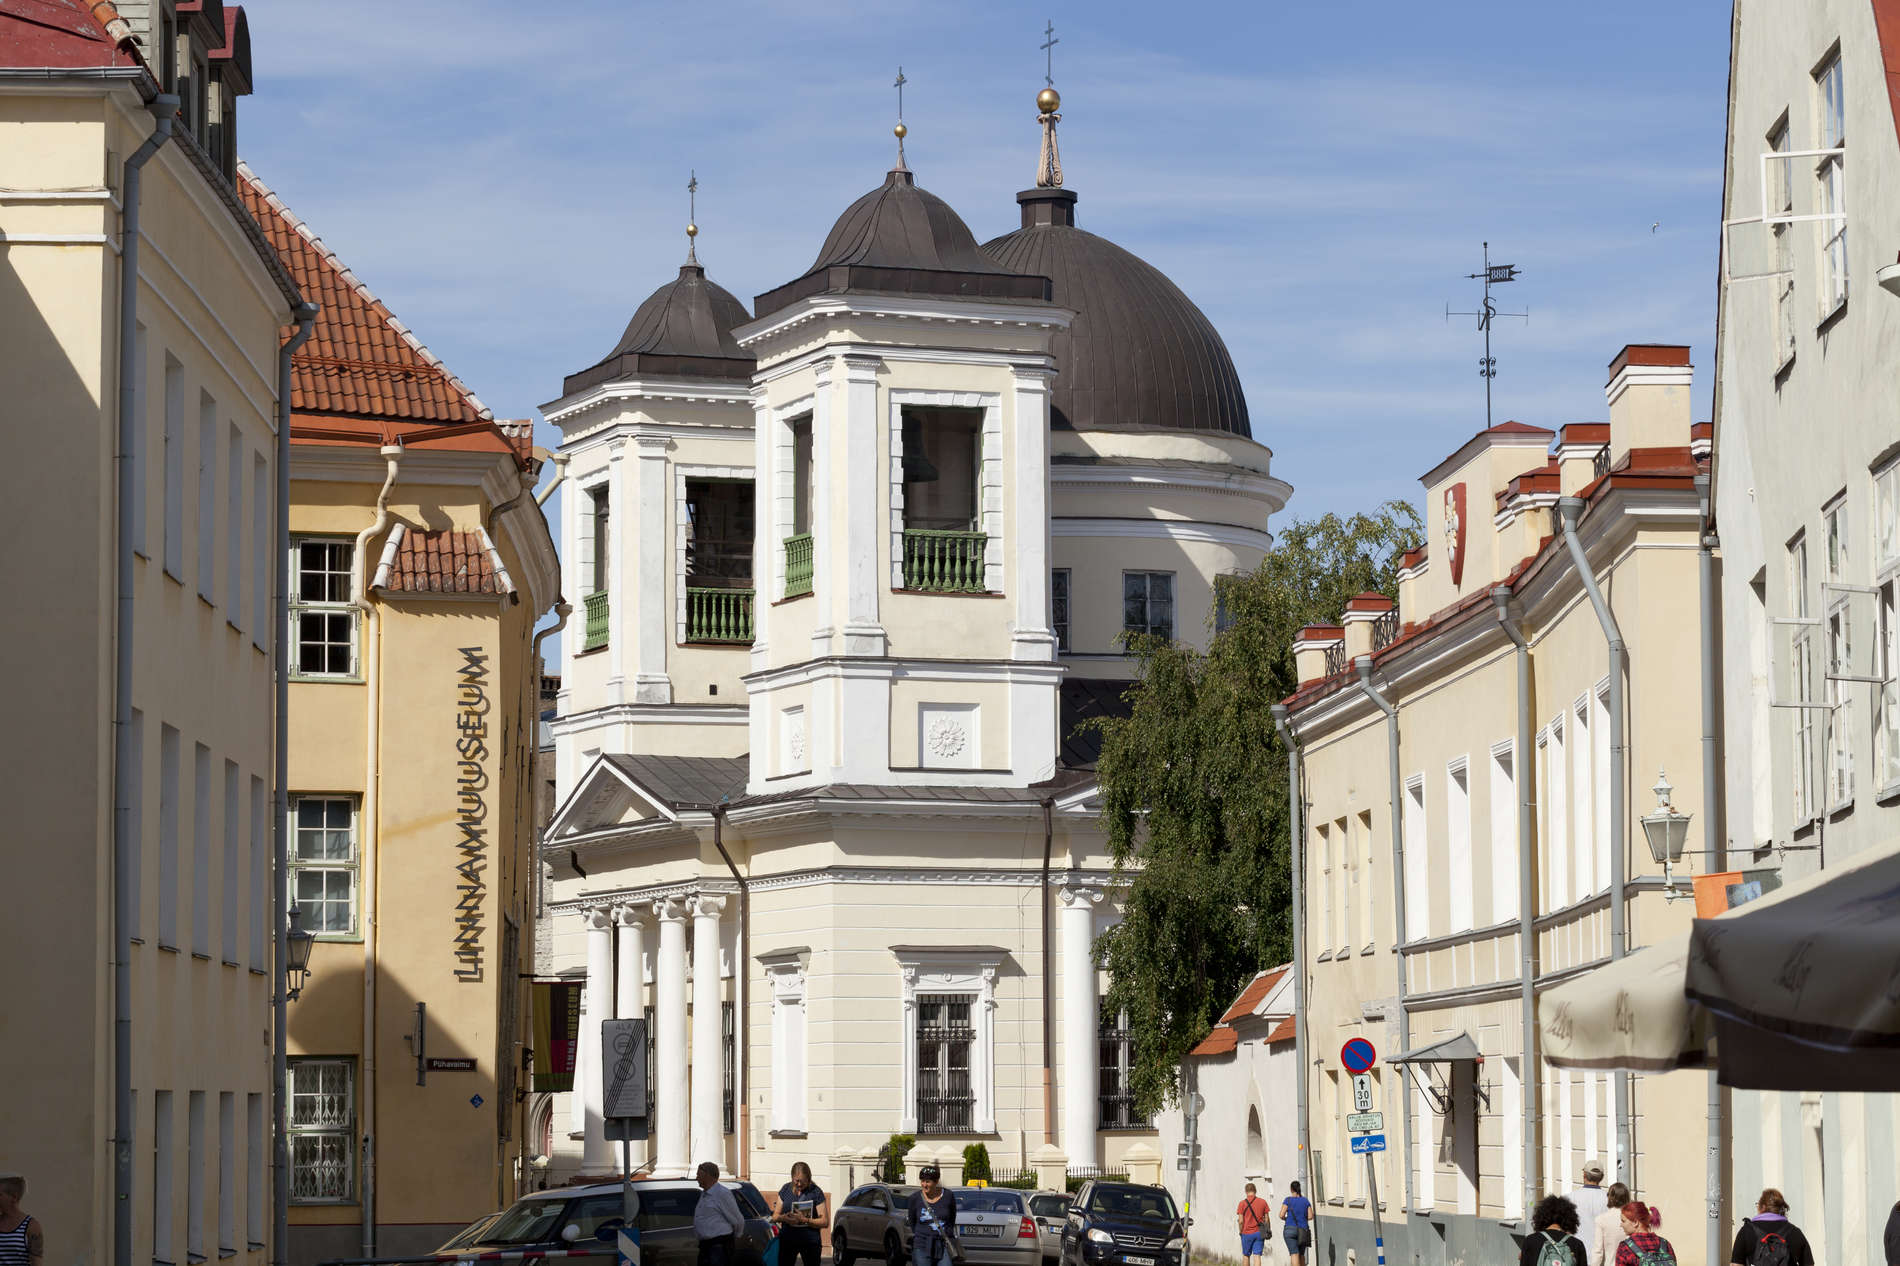 Orthodox Church of St. Nicholas in Tallinn, Estonia